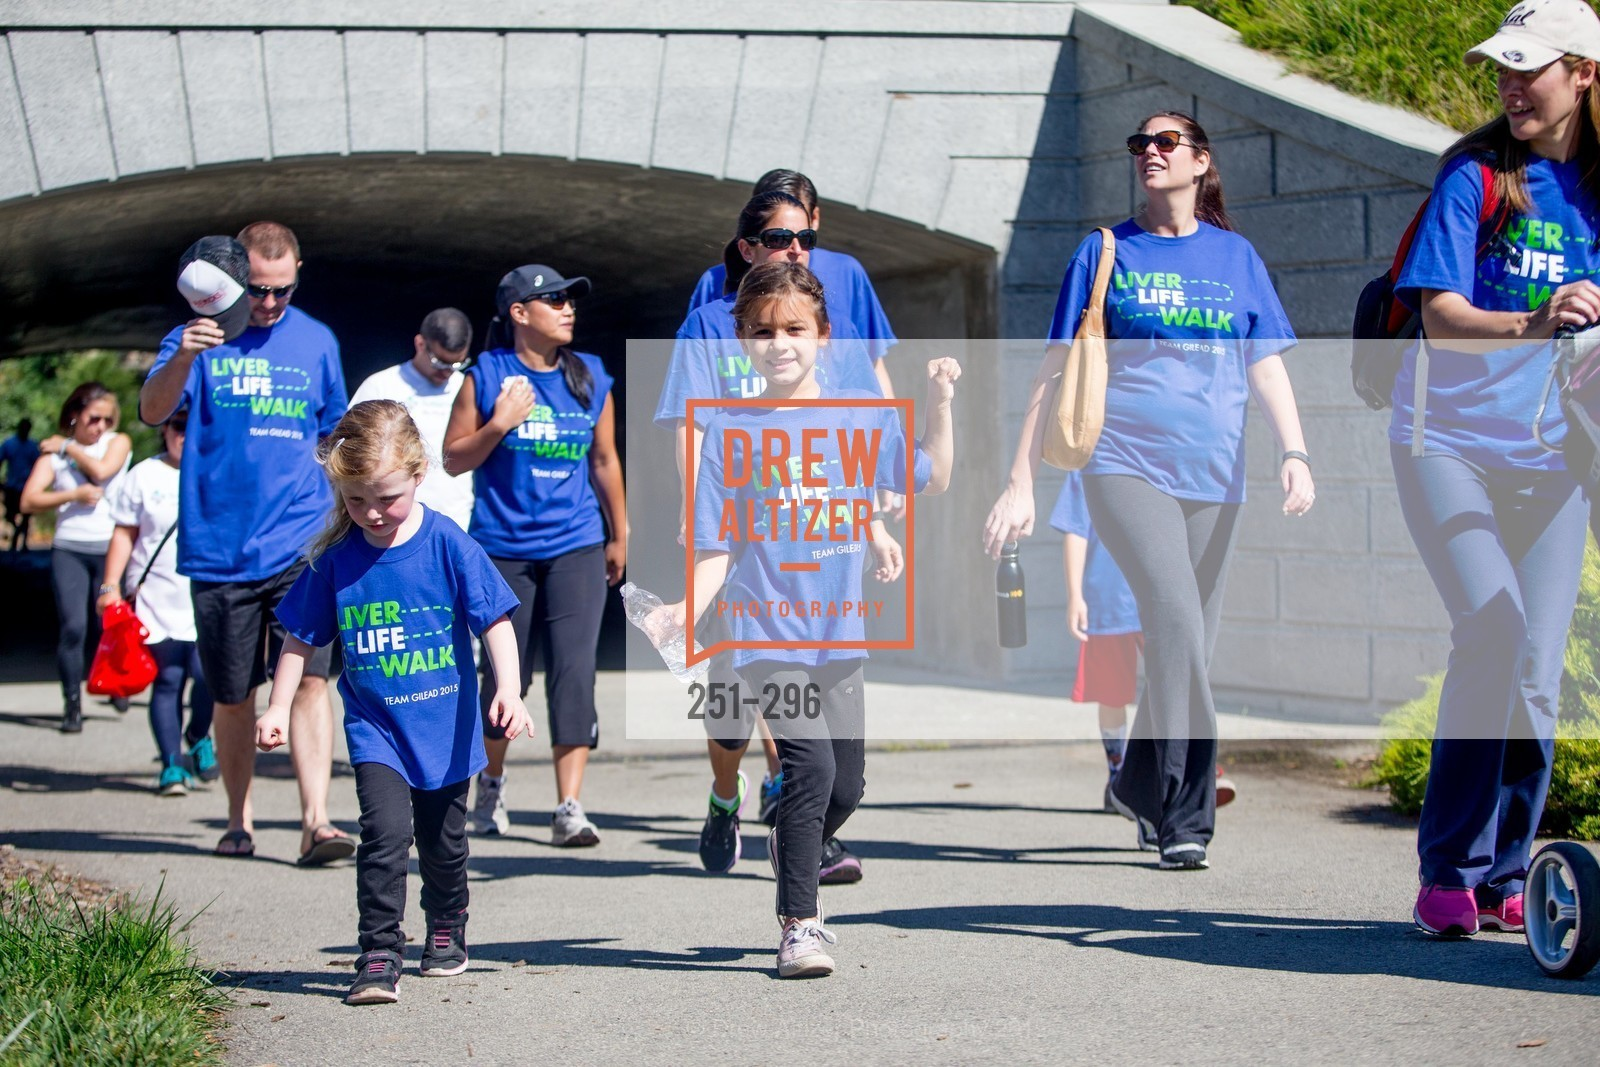 Extras, American Liver Foundation - San Francisco Liver Life Walk 2015, September 20th, 2015, Photo,Drew Altizer, Drew Altizer Photography, full-service event agency, private events, San Francisco photographer, photographer California